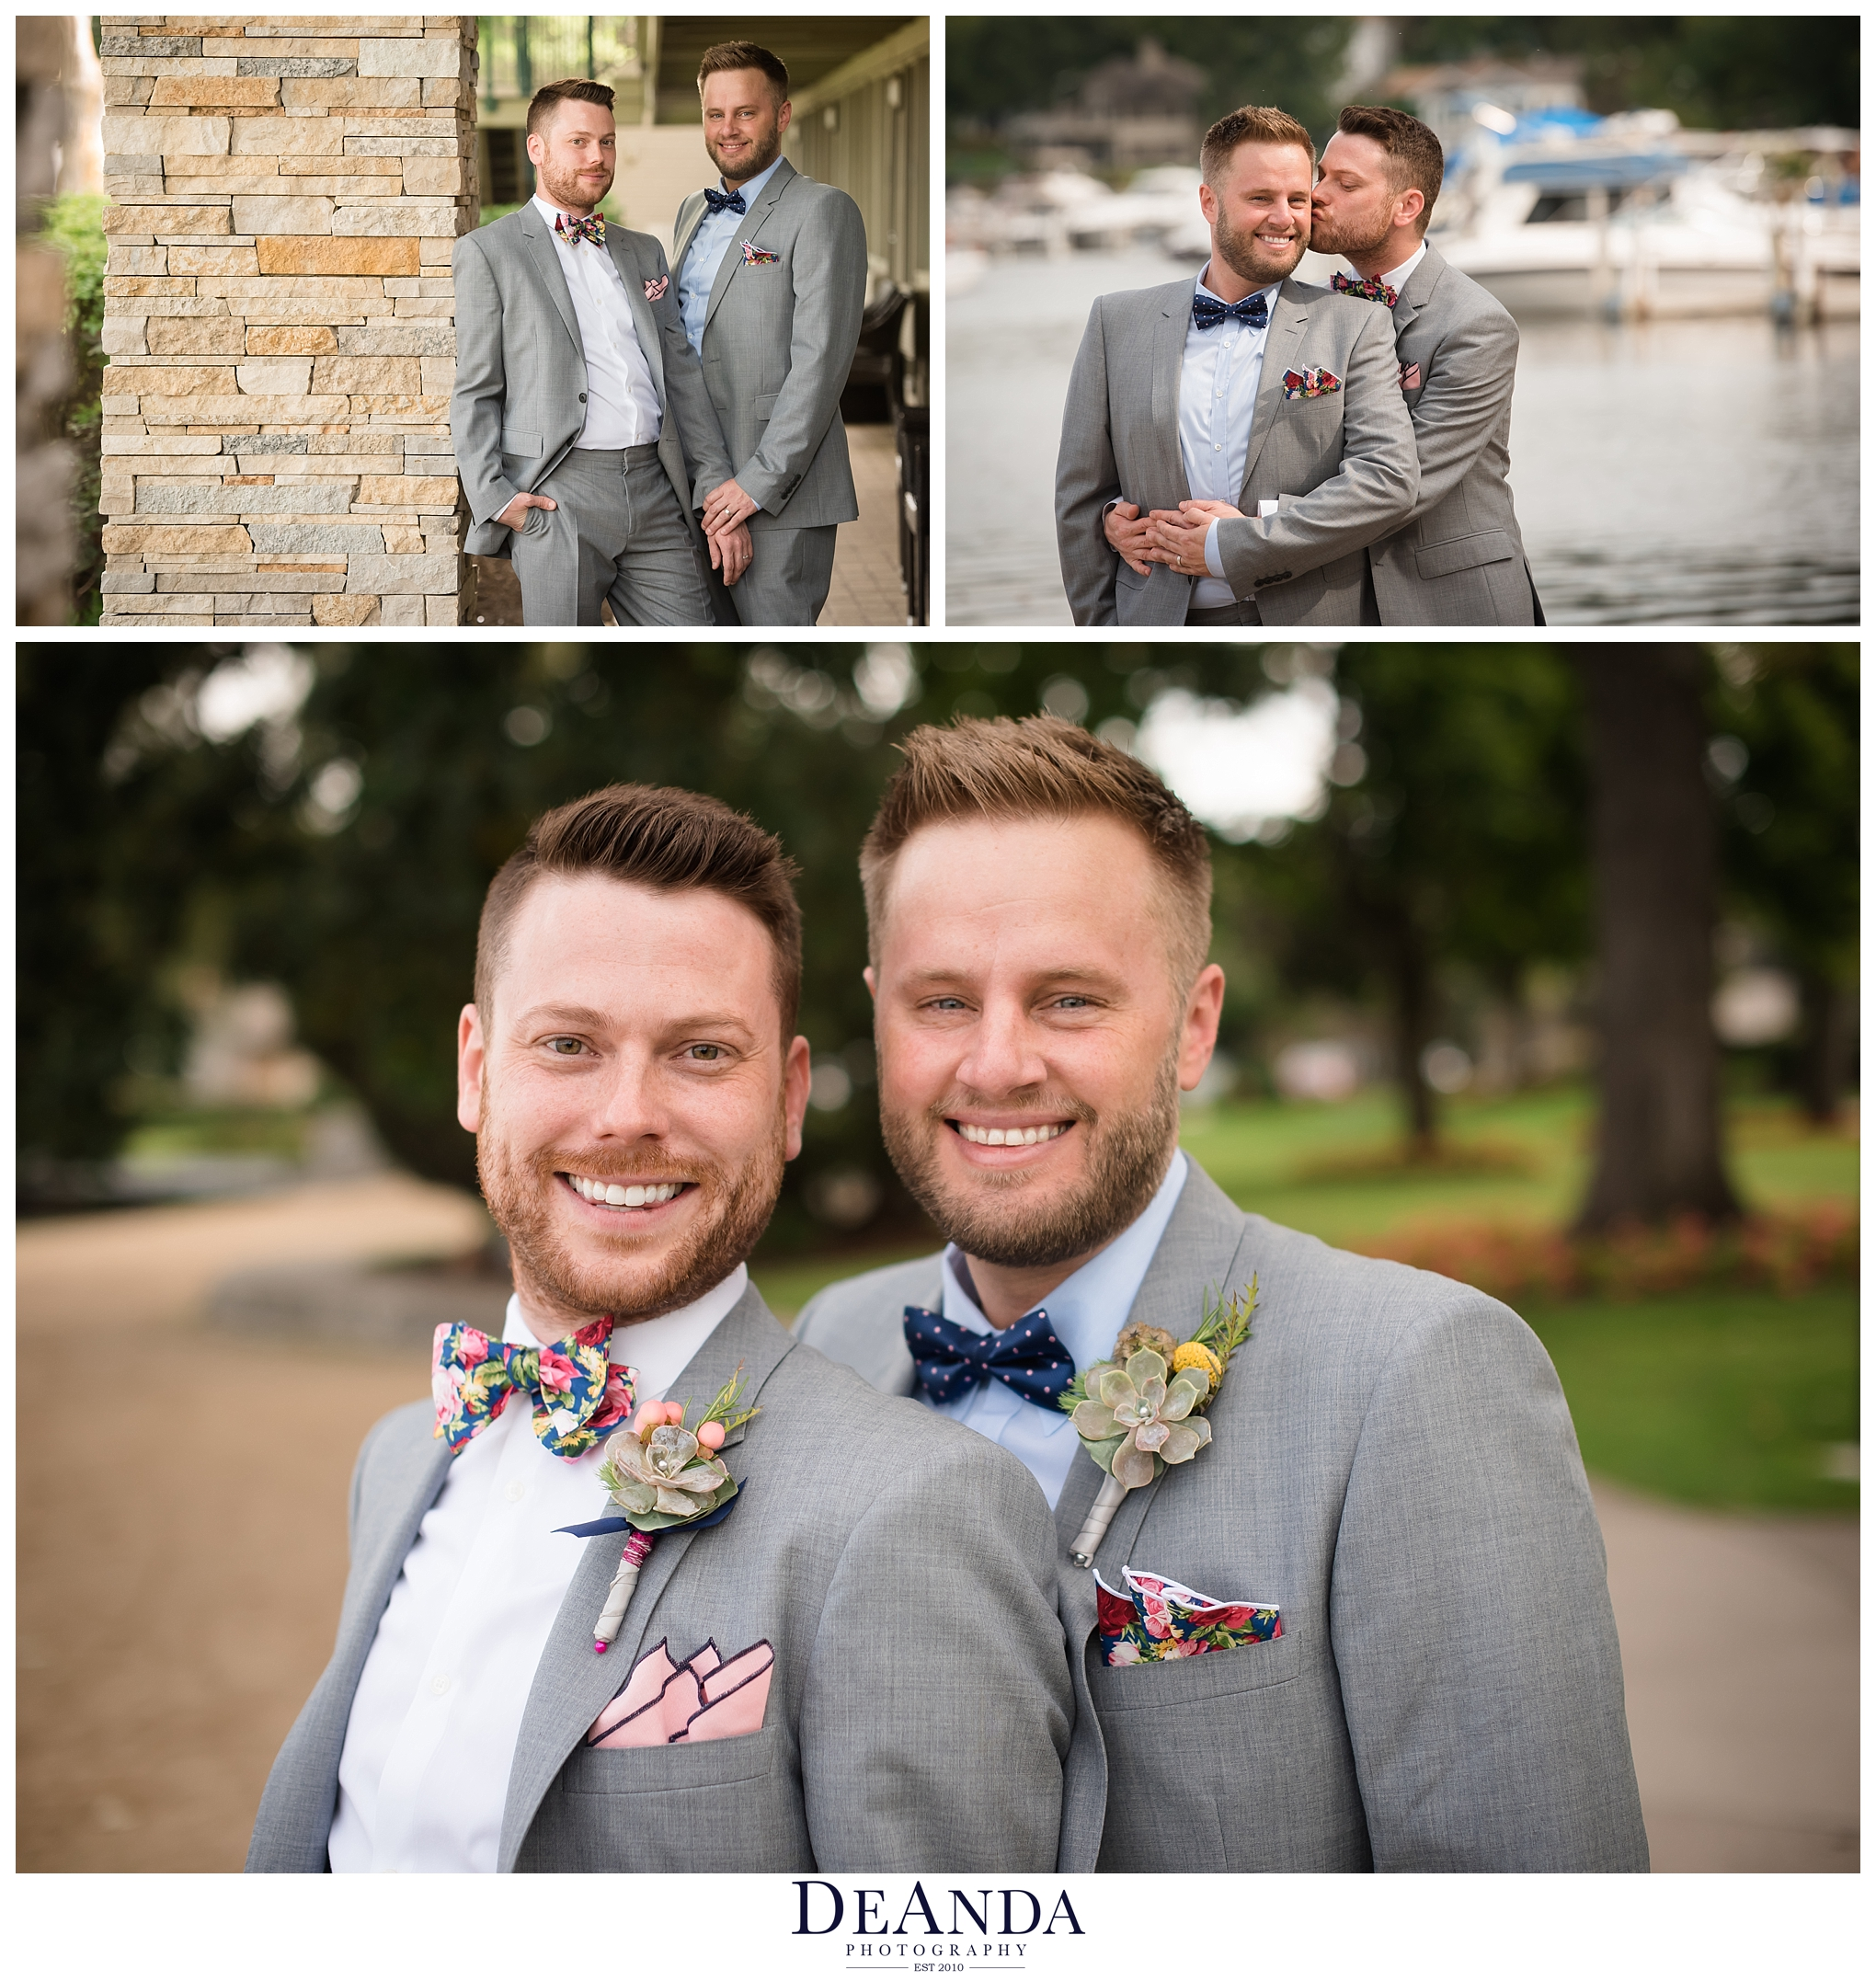 groom wedding portraits together, same sex couple